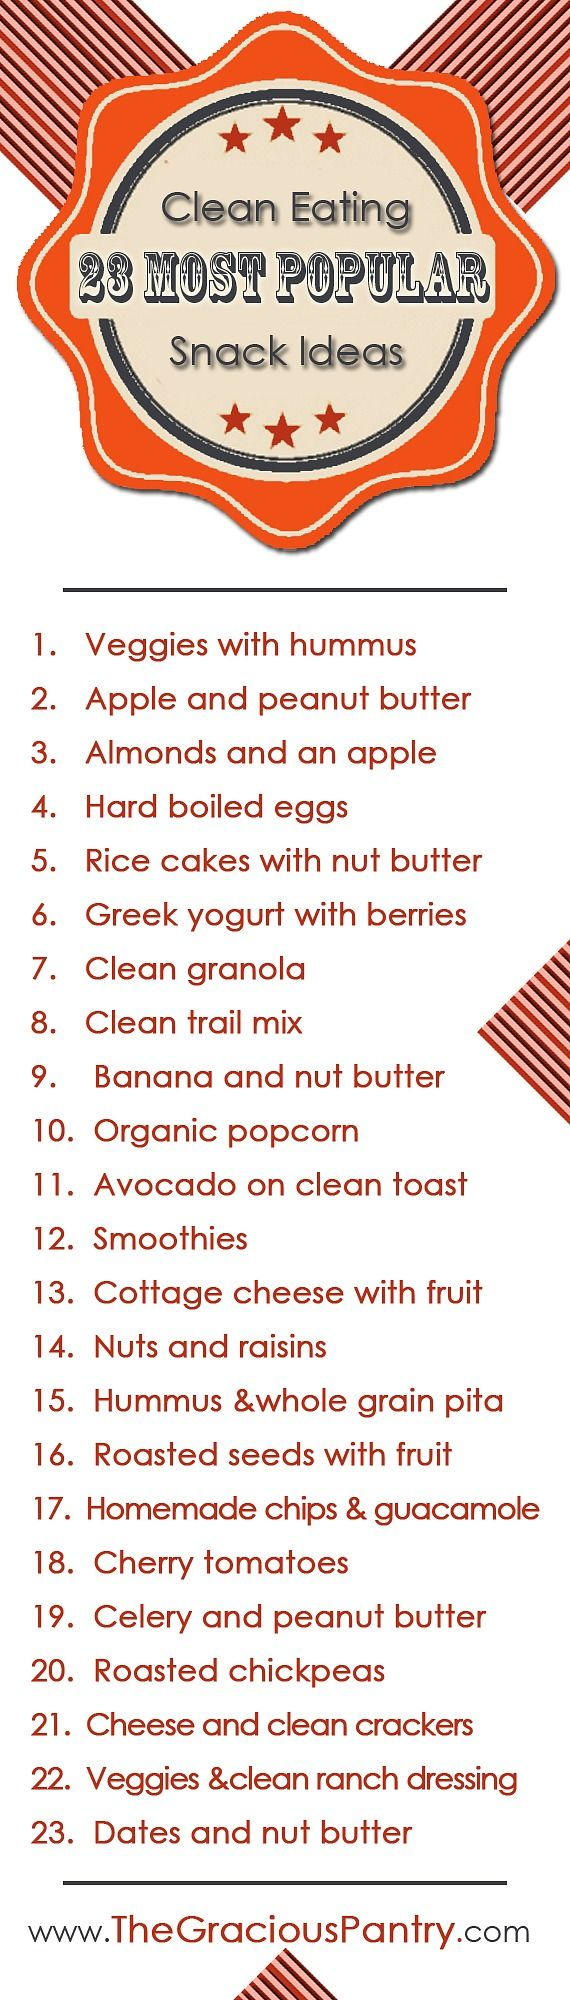 23 Most Popular Healthy Snack Ideas